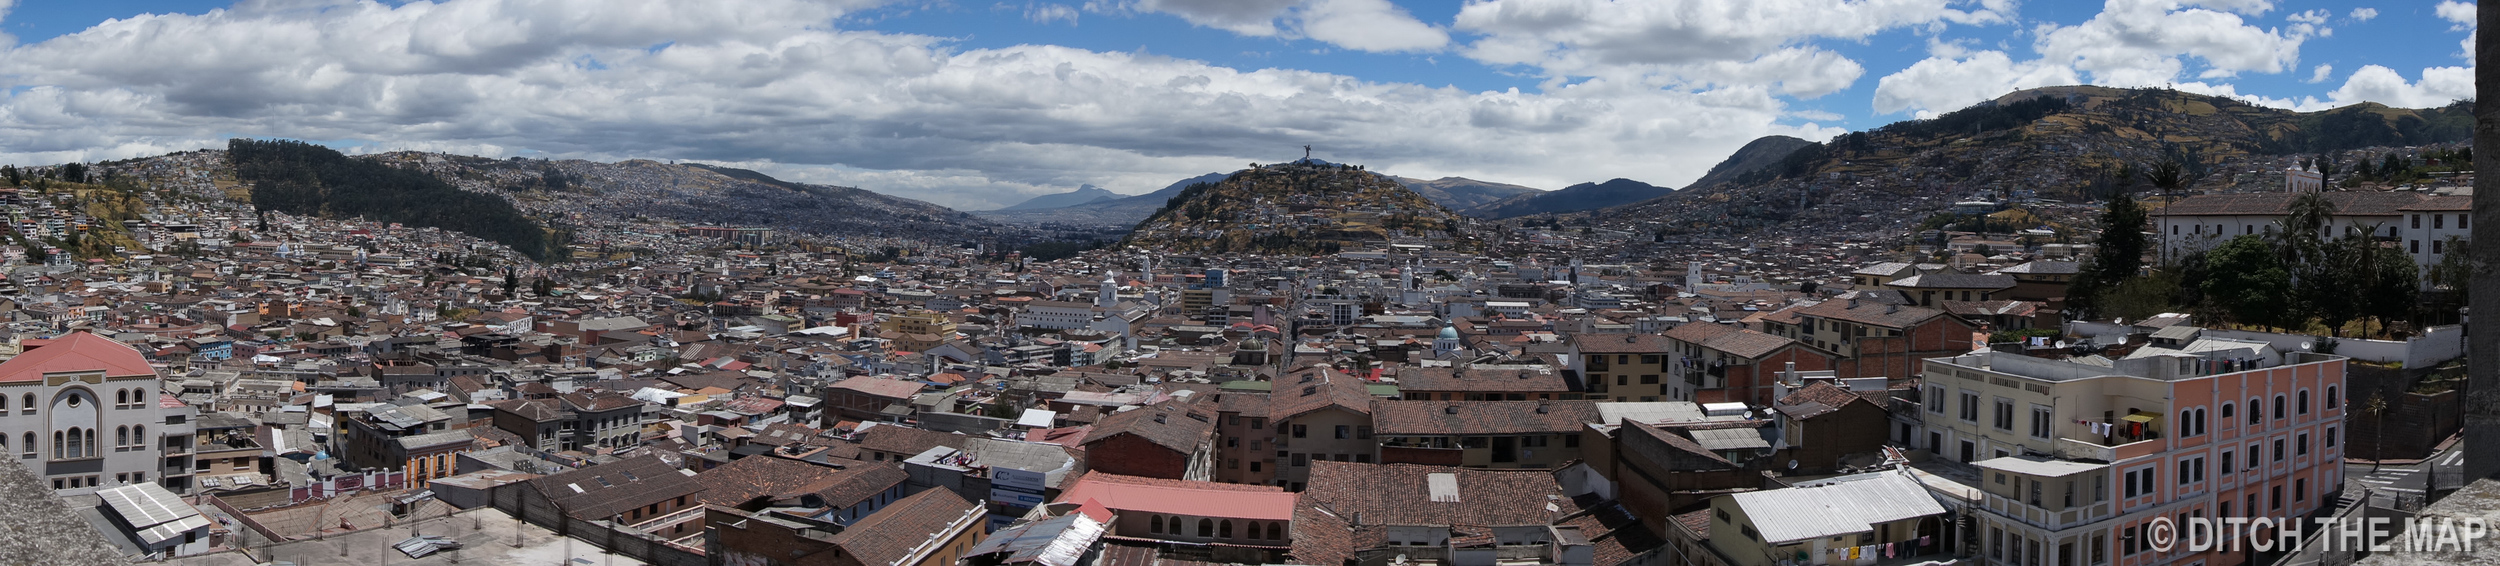 A View of Old Town in Quito, Ecuador